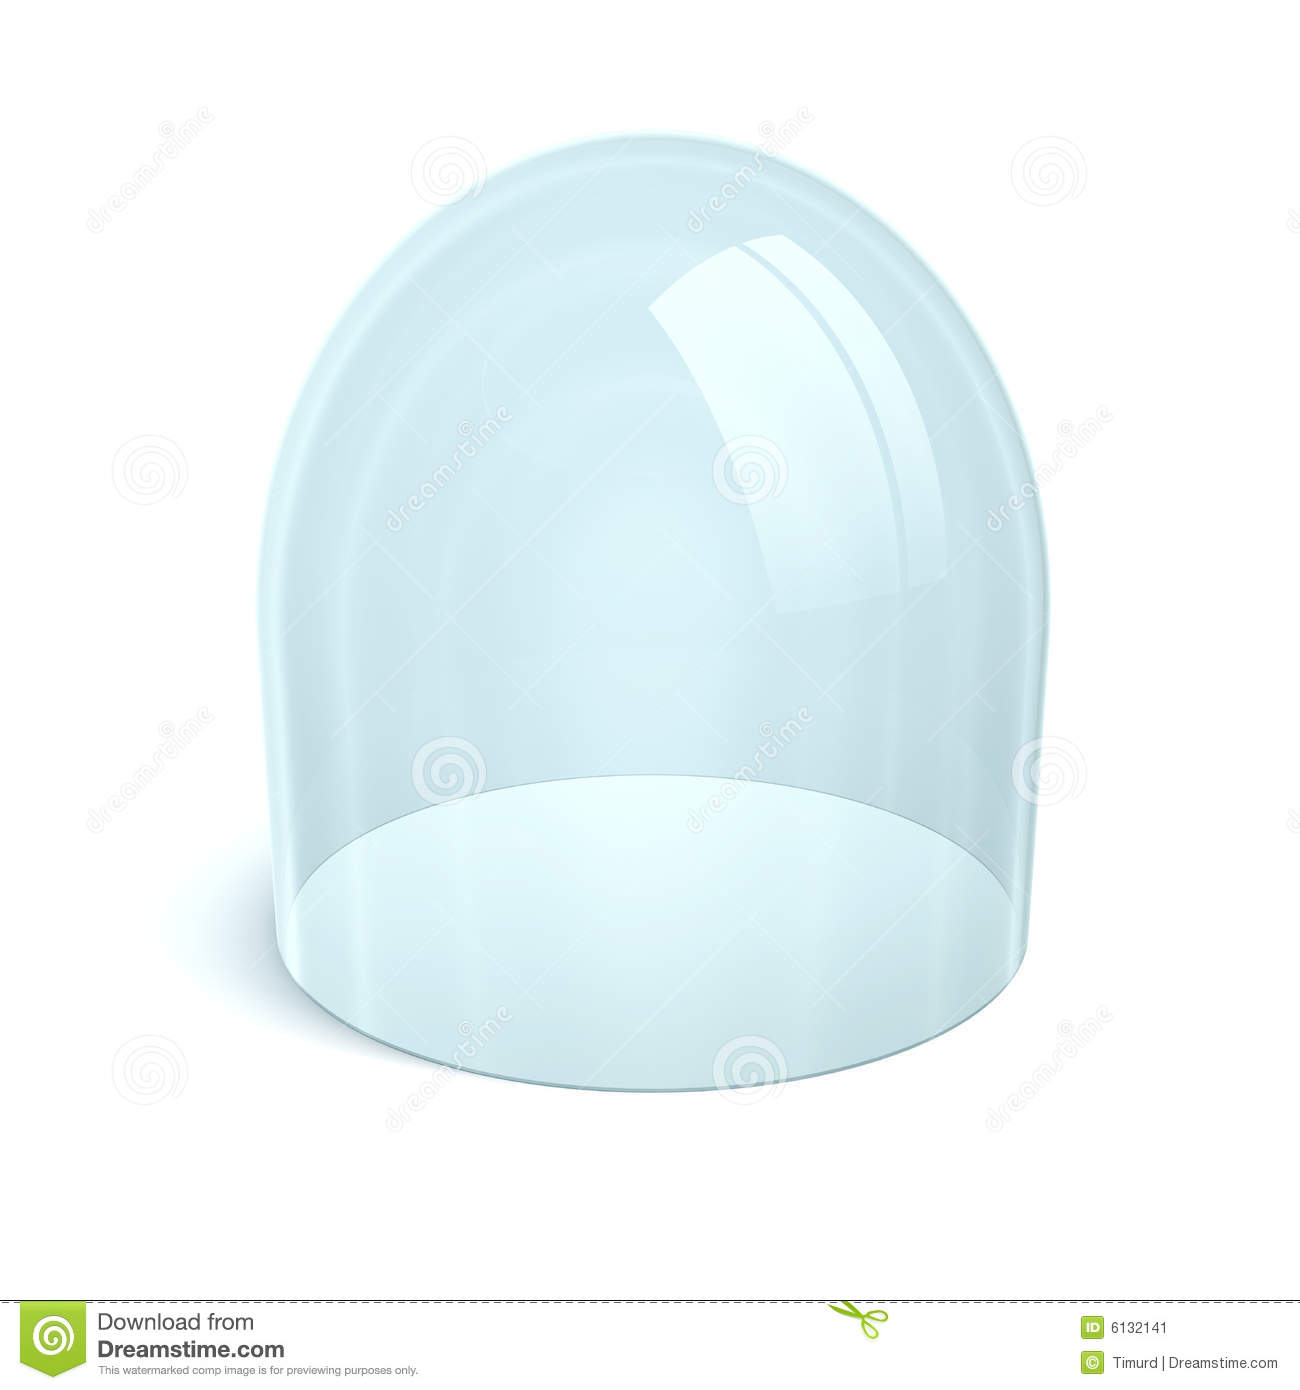 Clean Glass Dome Stock Image.